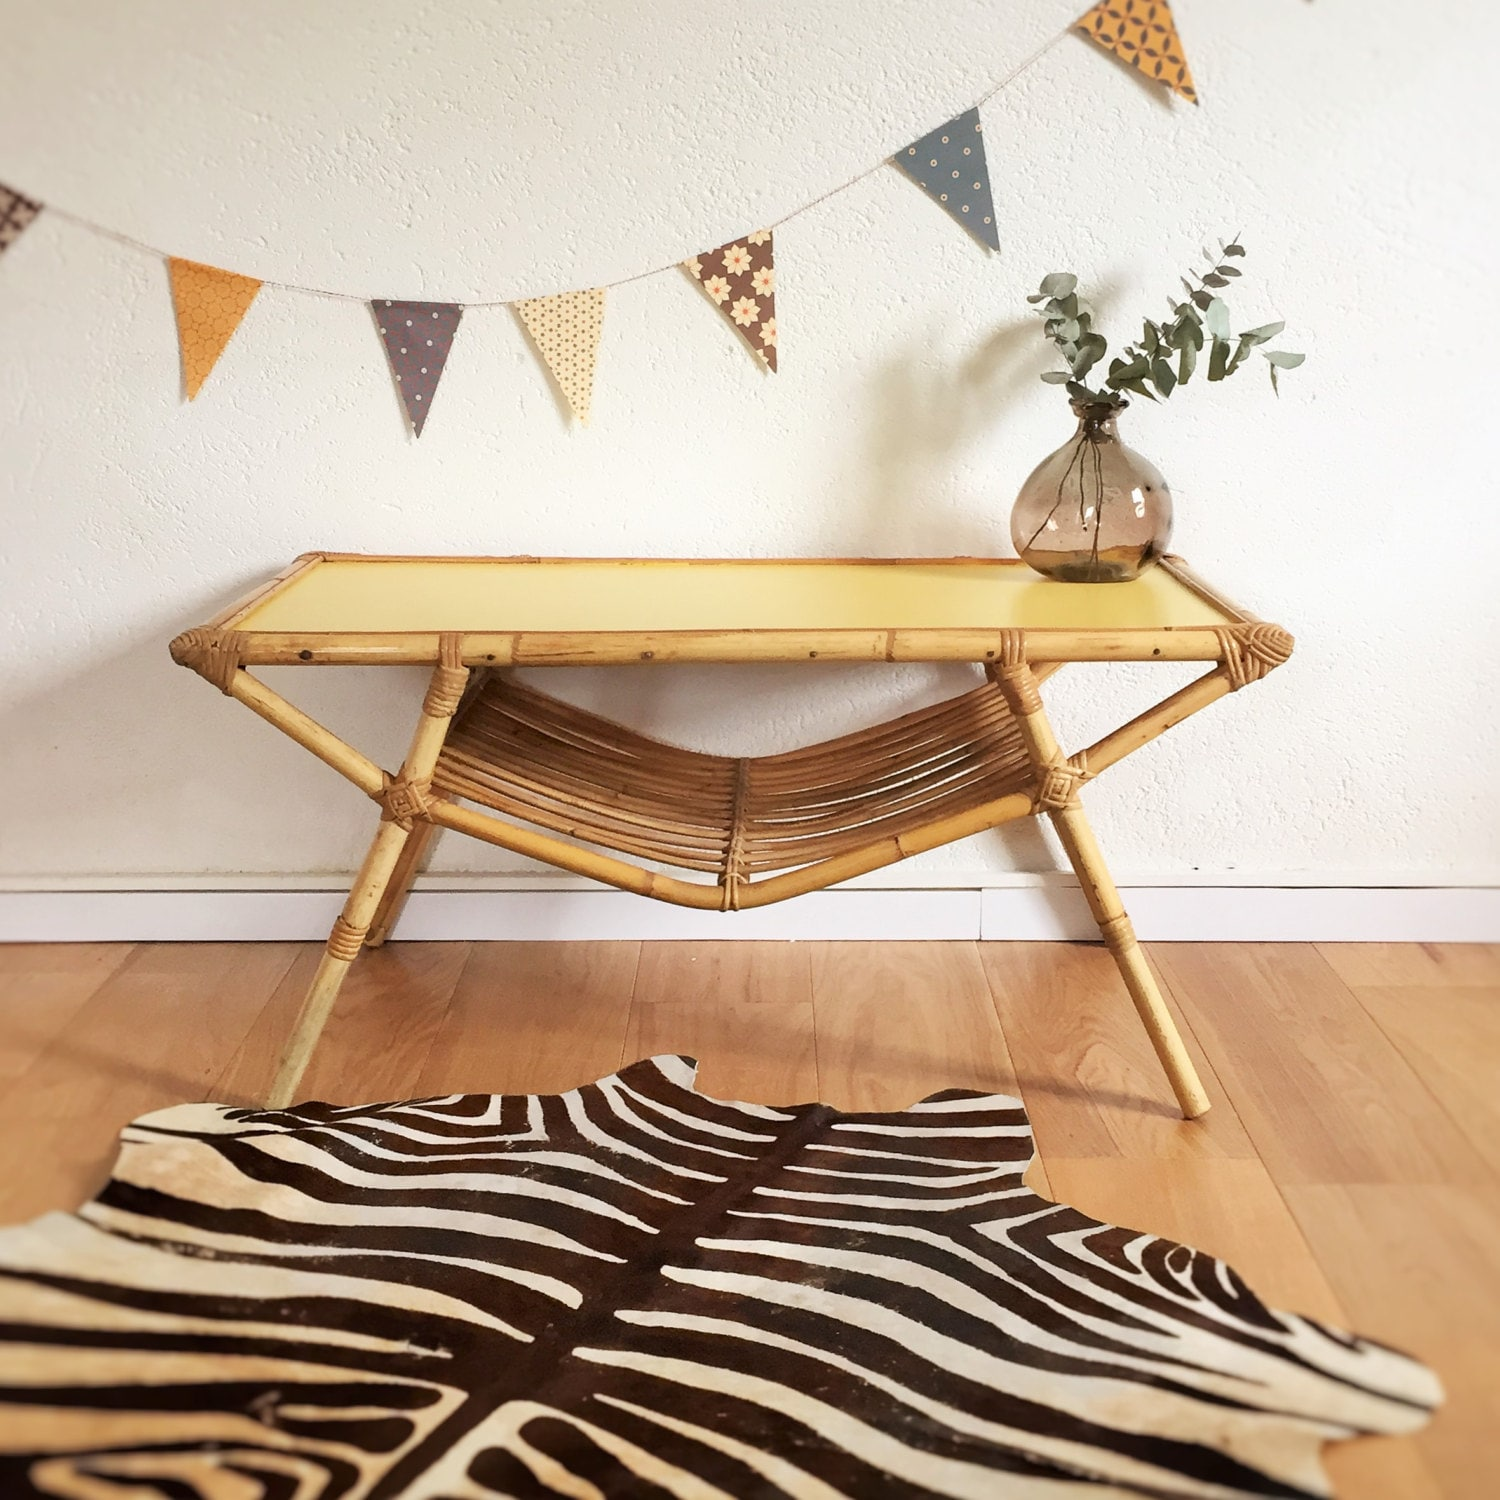 Rattan Coffee Table Etsy: Table Coffee Table Rattan Mid Century Modern By